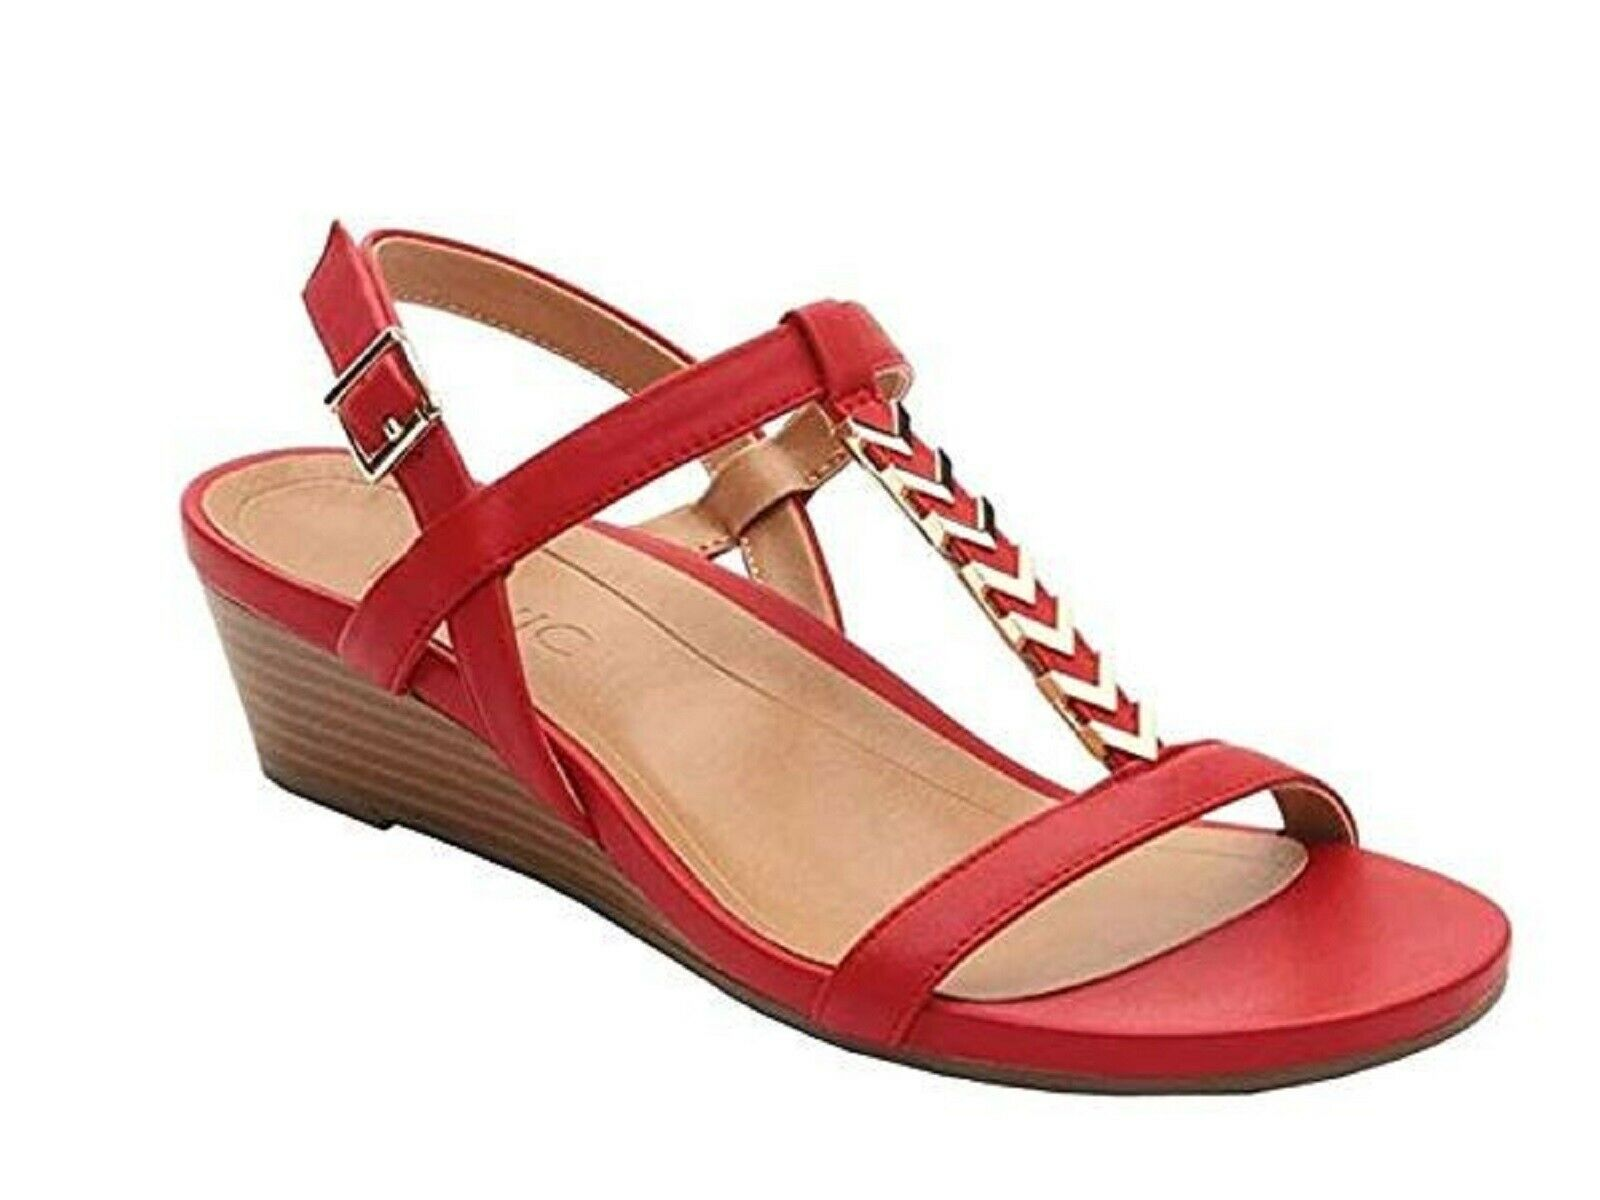 Vionic Orhaheel PORT CALI Leather Open Toe Ankle Strap Sandals RED Size 11 W NIB